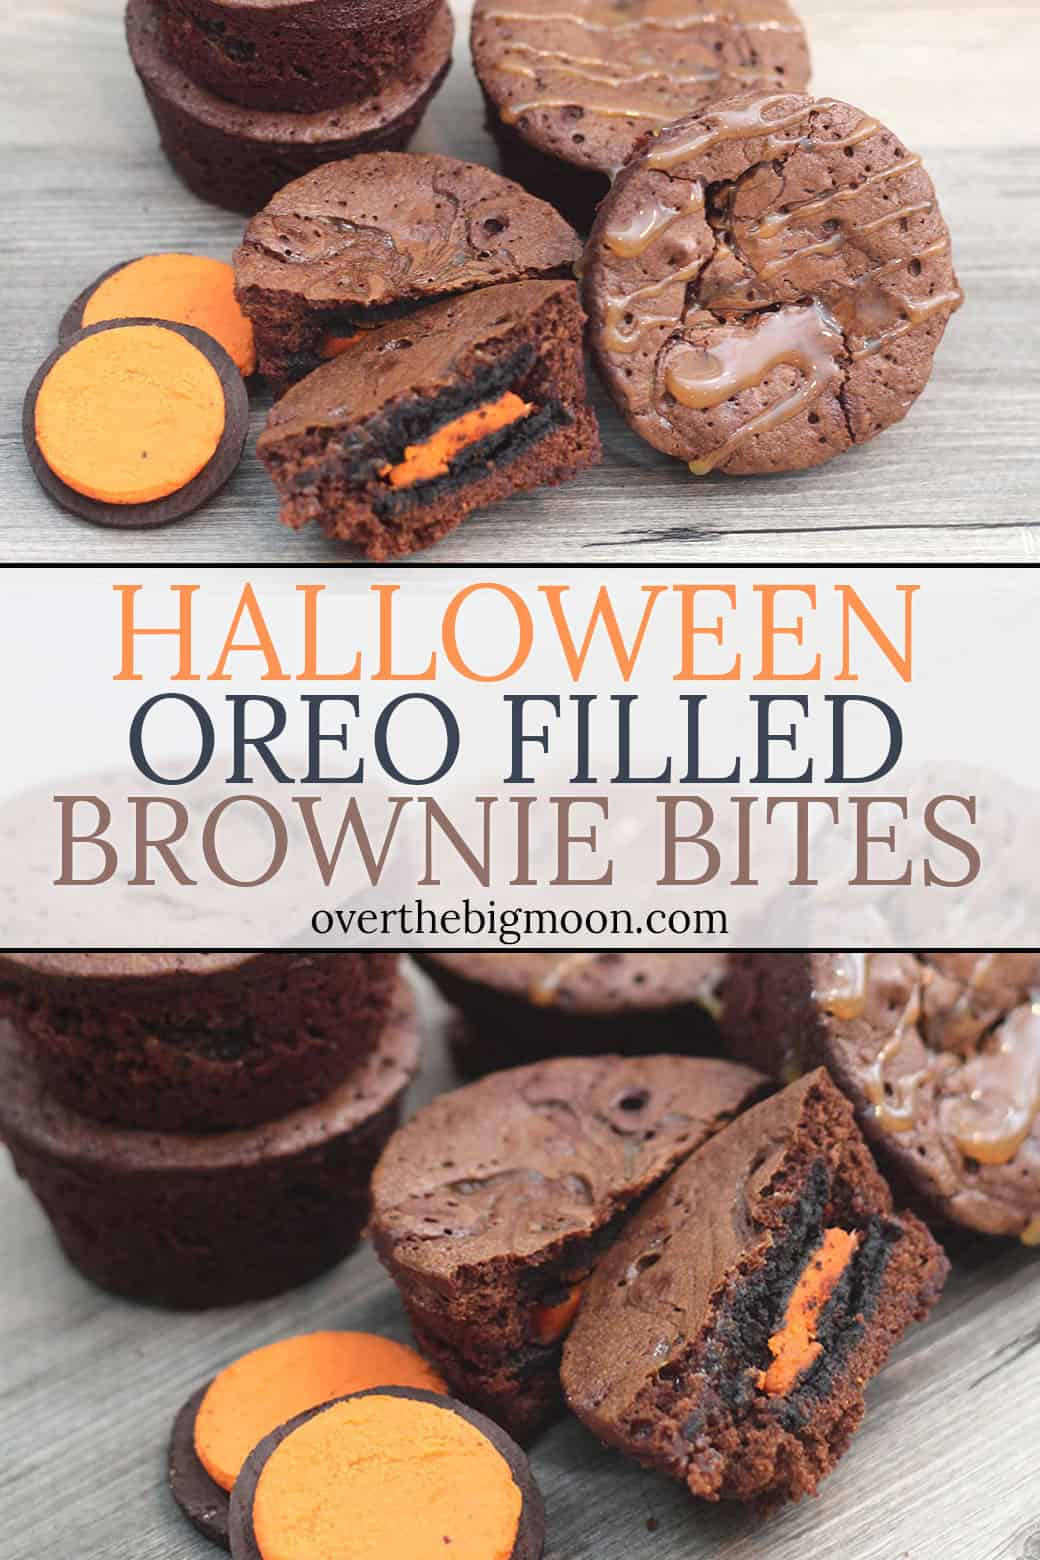 These funOreo Filled Caramel Brownie Bites are the perfect treat that everyone will love! Use orange filled Oreo's to make them the perfect Halloween Treat!